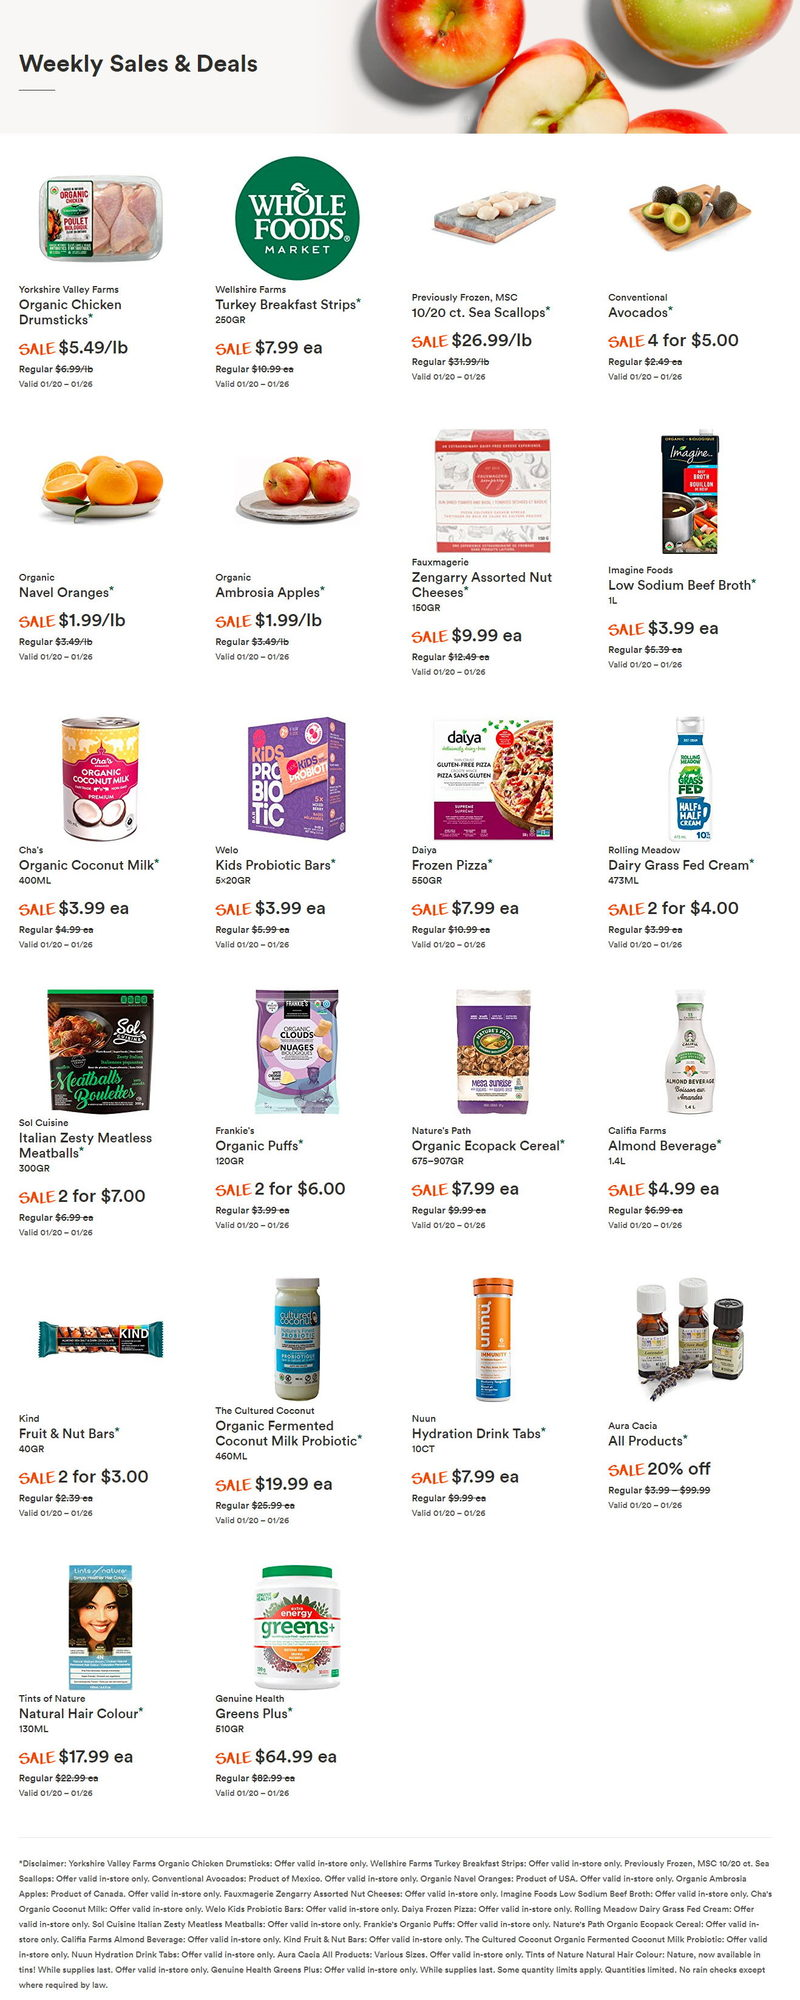 Whole Foods Market - Weekly Specials